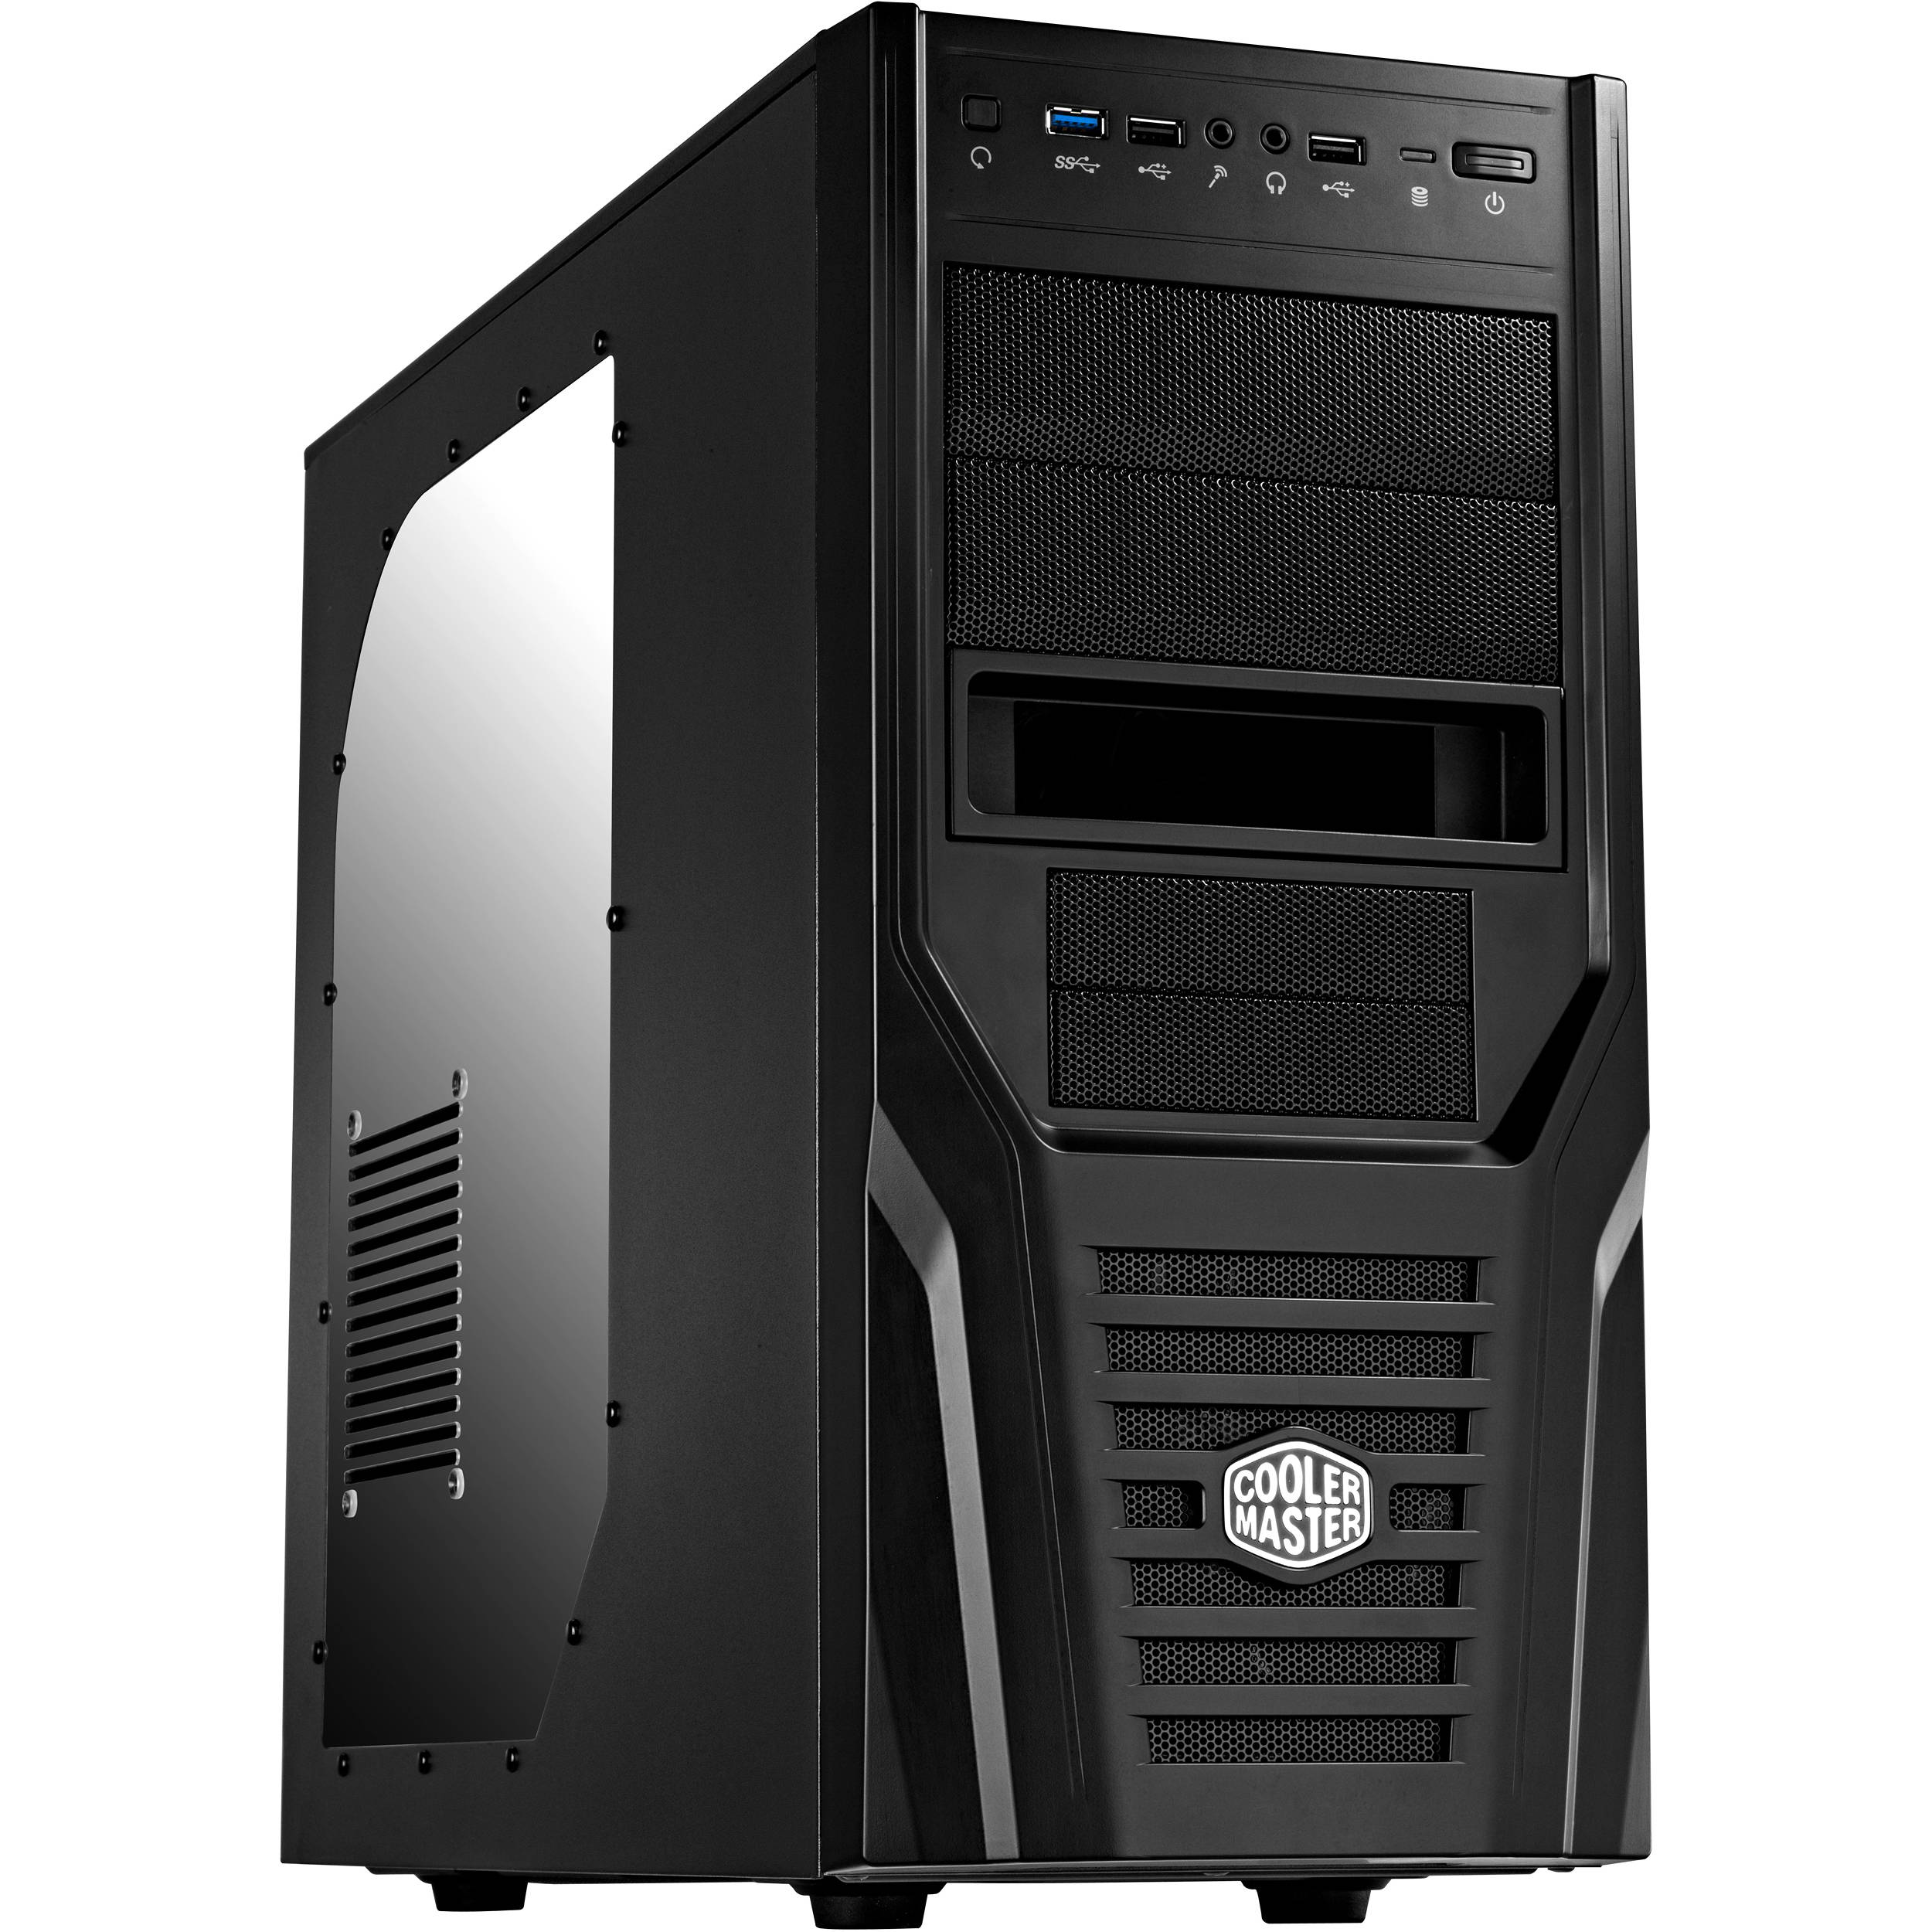 Cooler Master Elite 431 Plus Mid Tower Computer Case